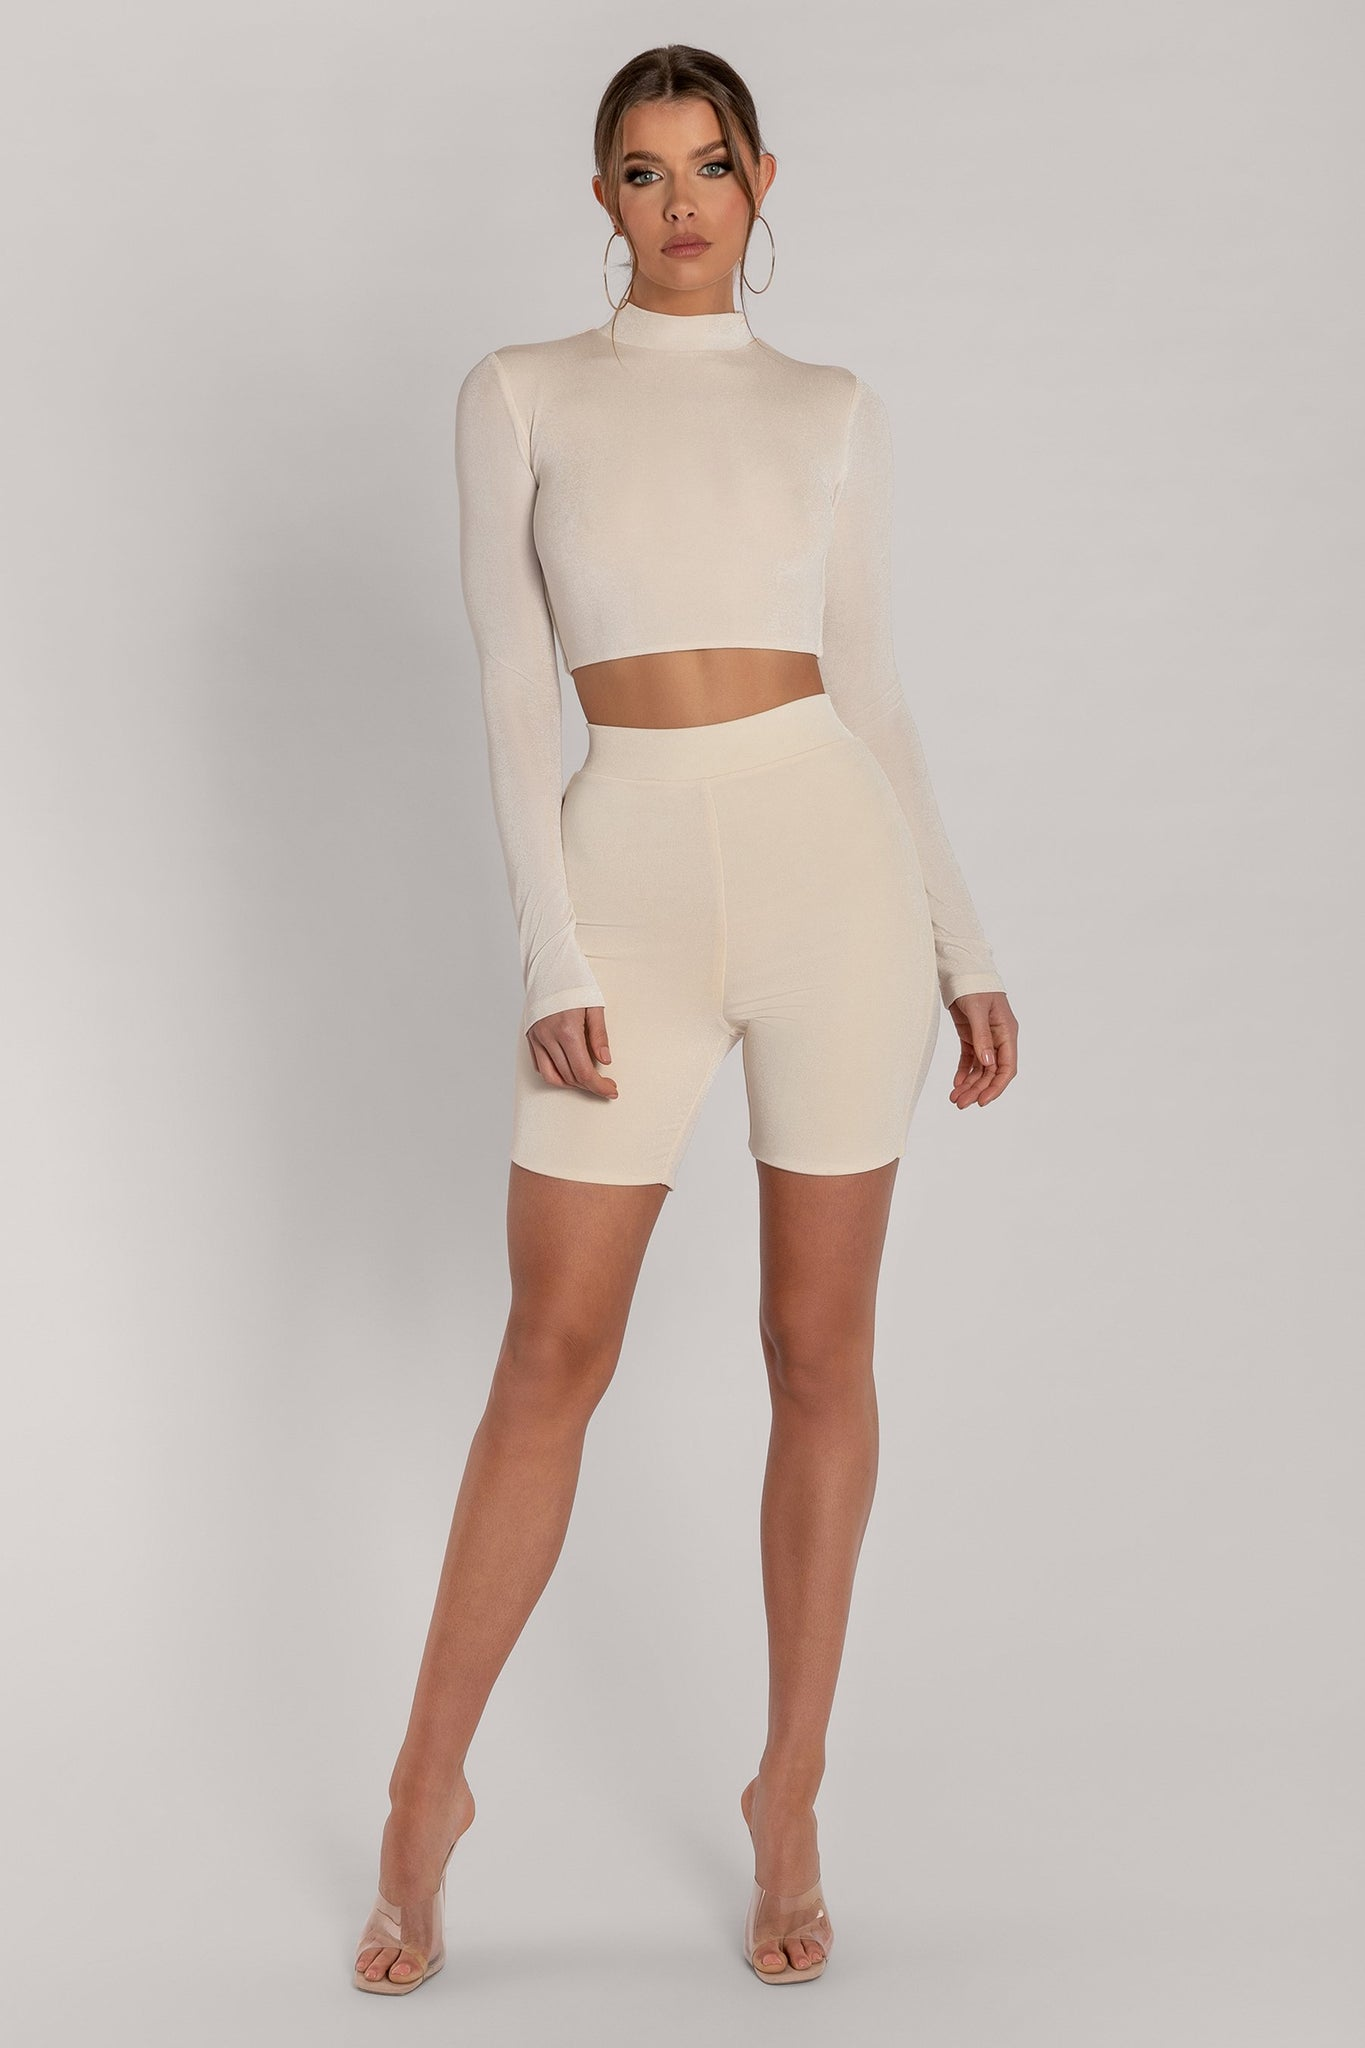 Georgina Luxe Jersey High Neck Long Sleeve Crop Top - Cream - MESHKI